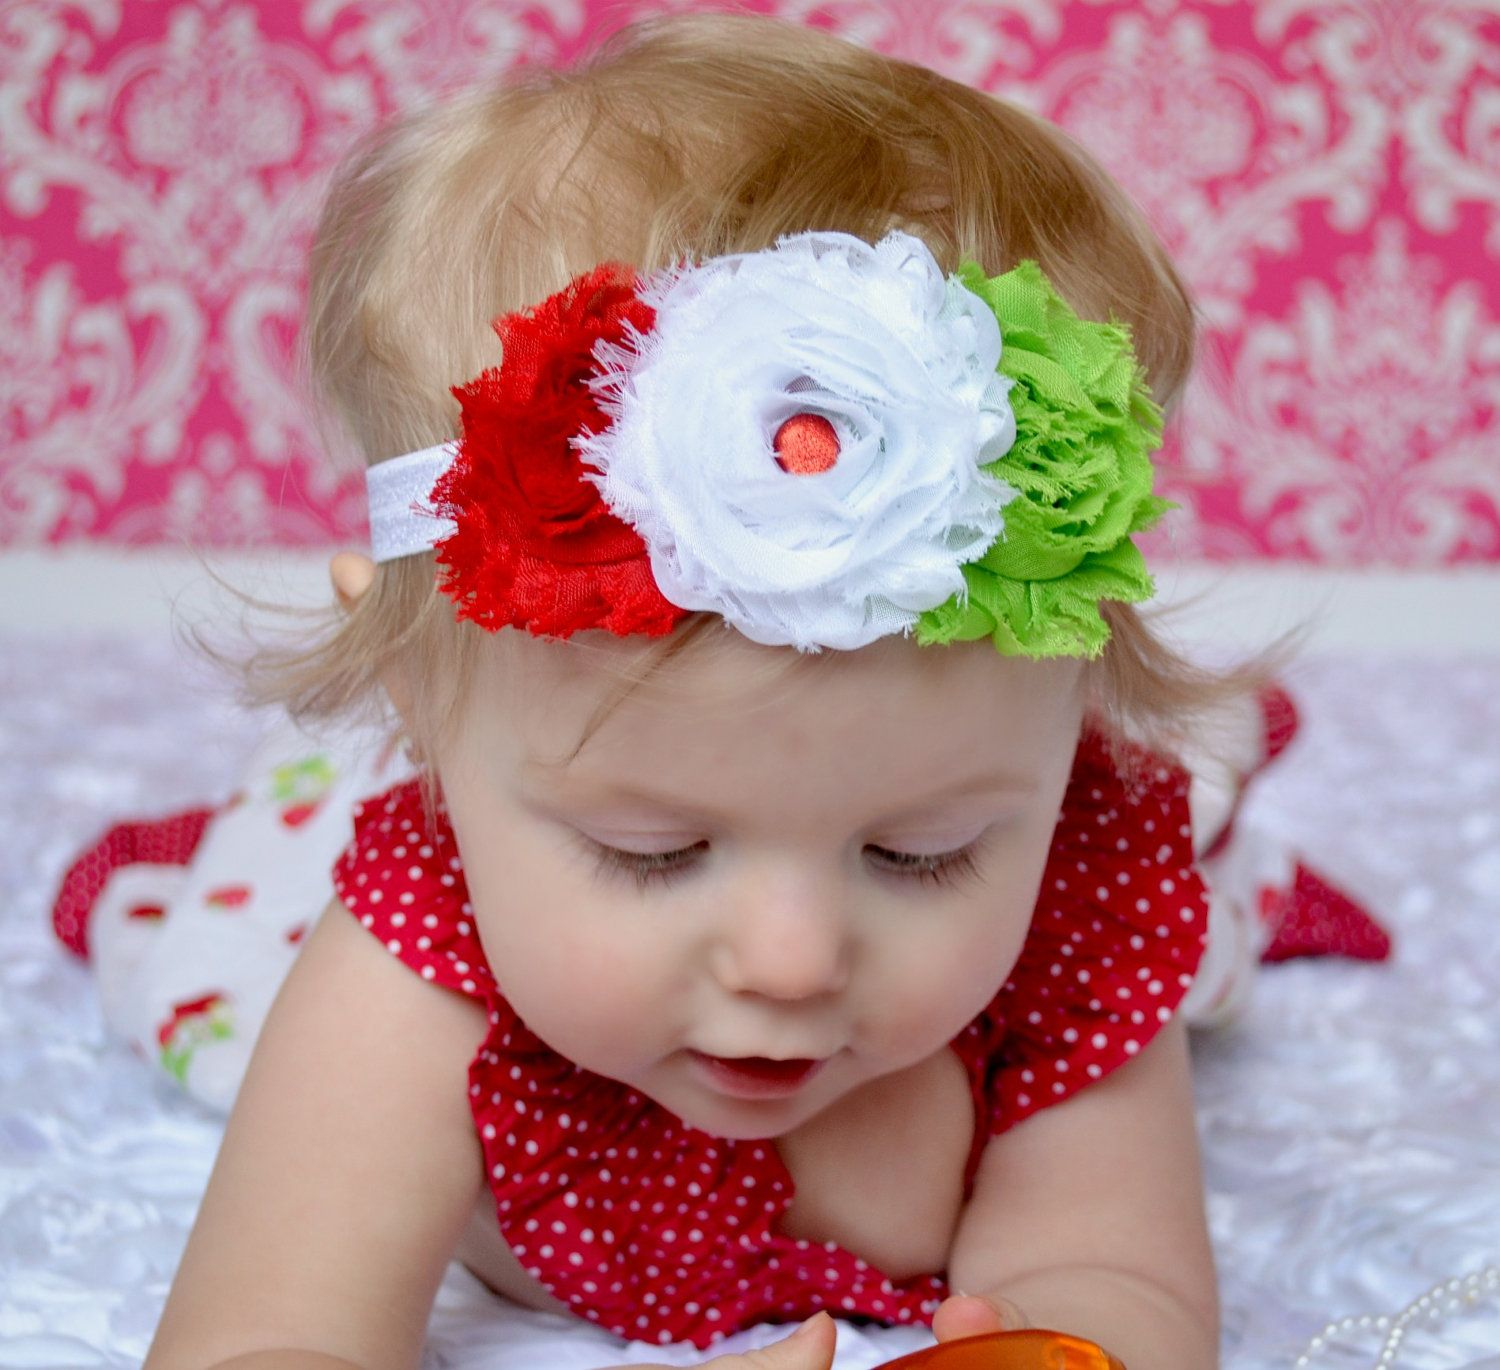 Macys baby hair accessories - Strawberry Headband Baby Headbands Shabby Flower By Spoilednsweet Cute Christmas Present For Lil Cousin Baby Macy